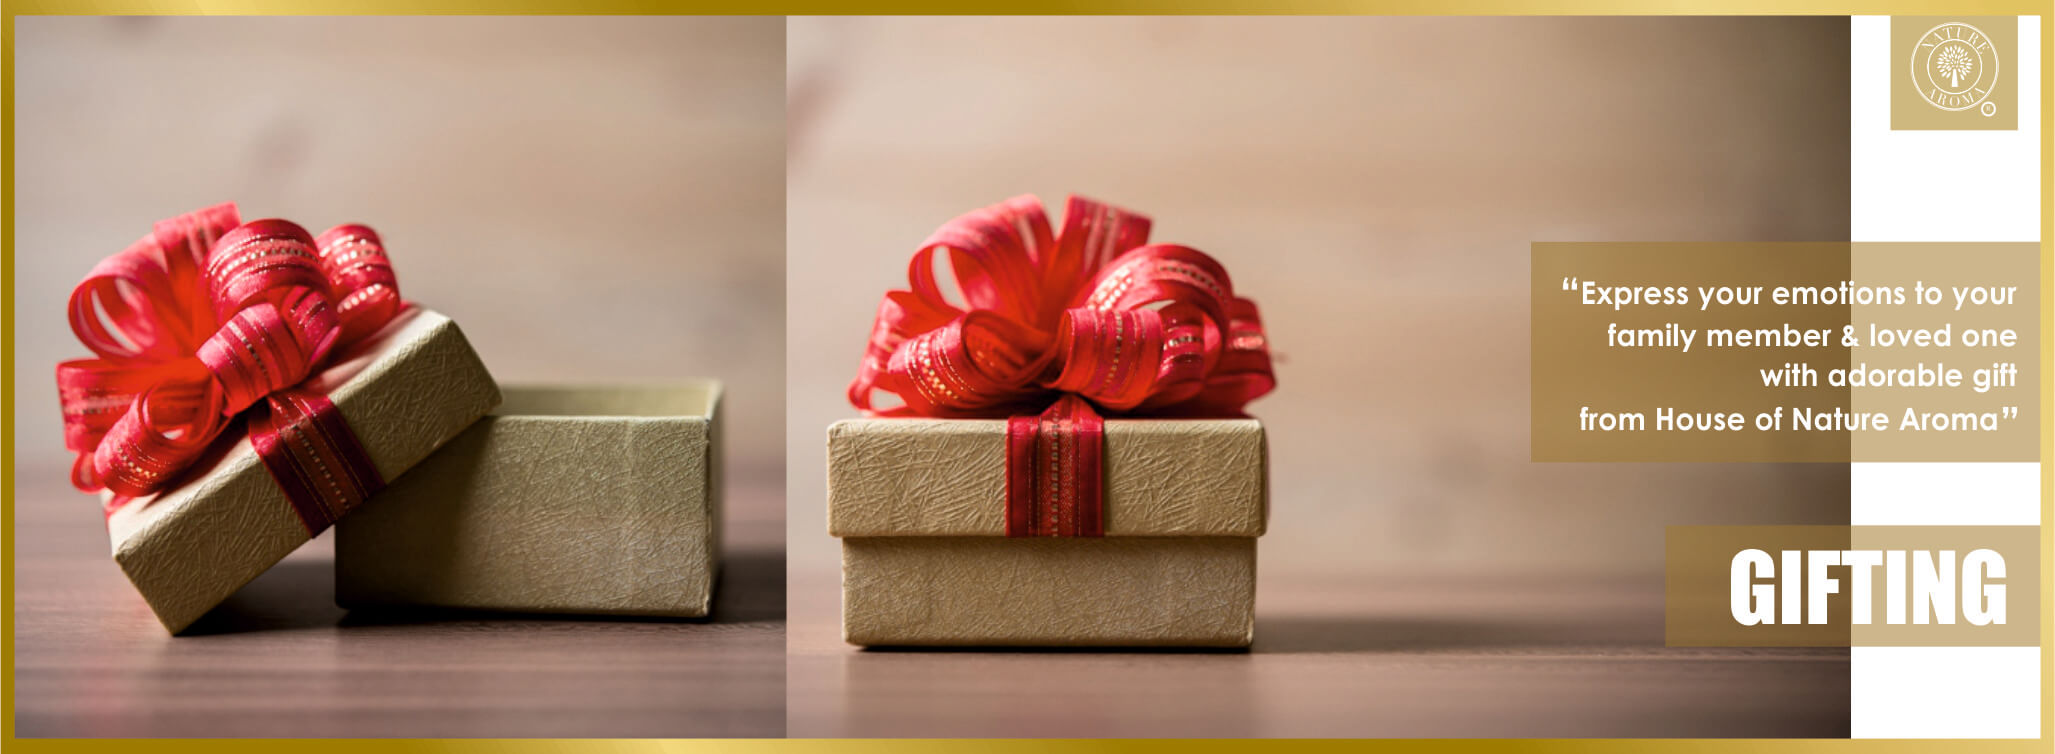 GIFITING GOLD_HOMEPAGE_INSDIE BOTH